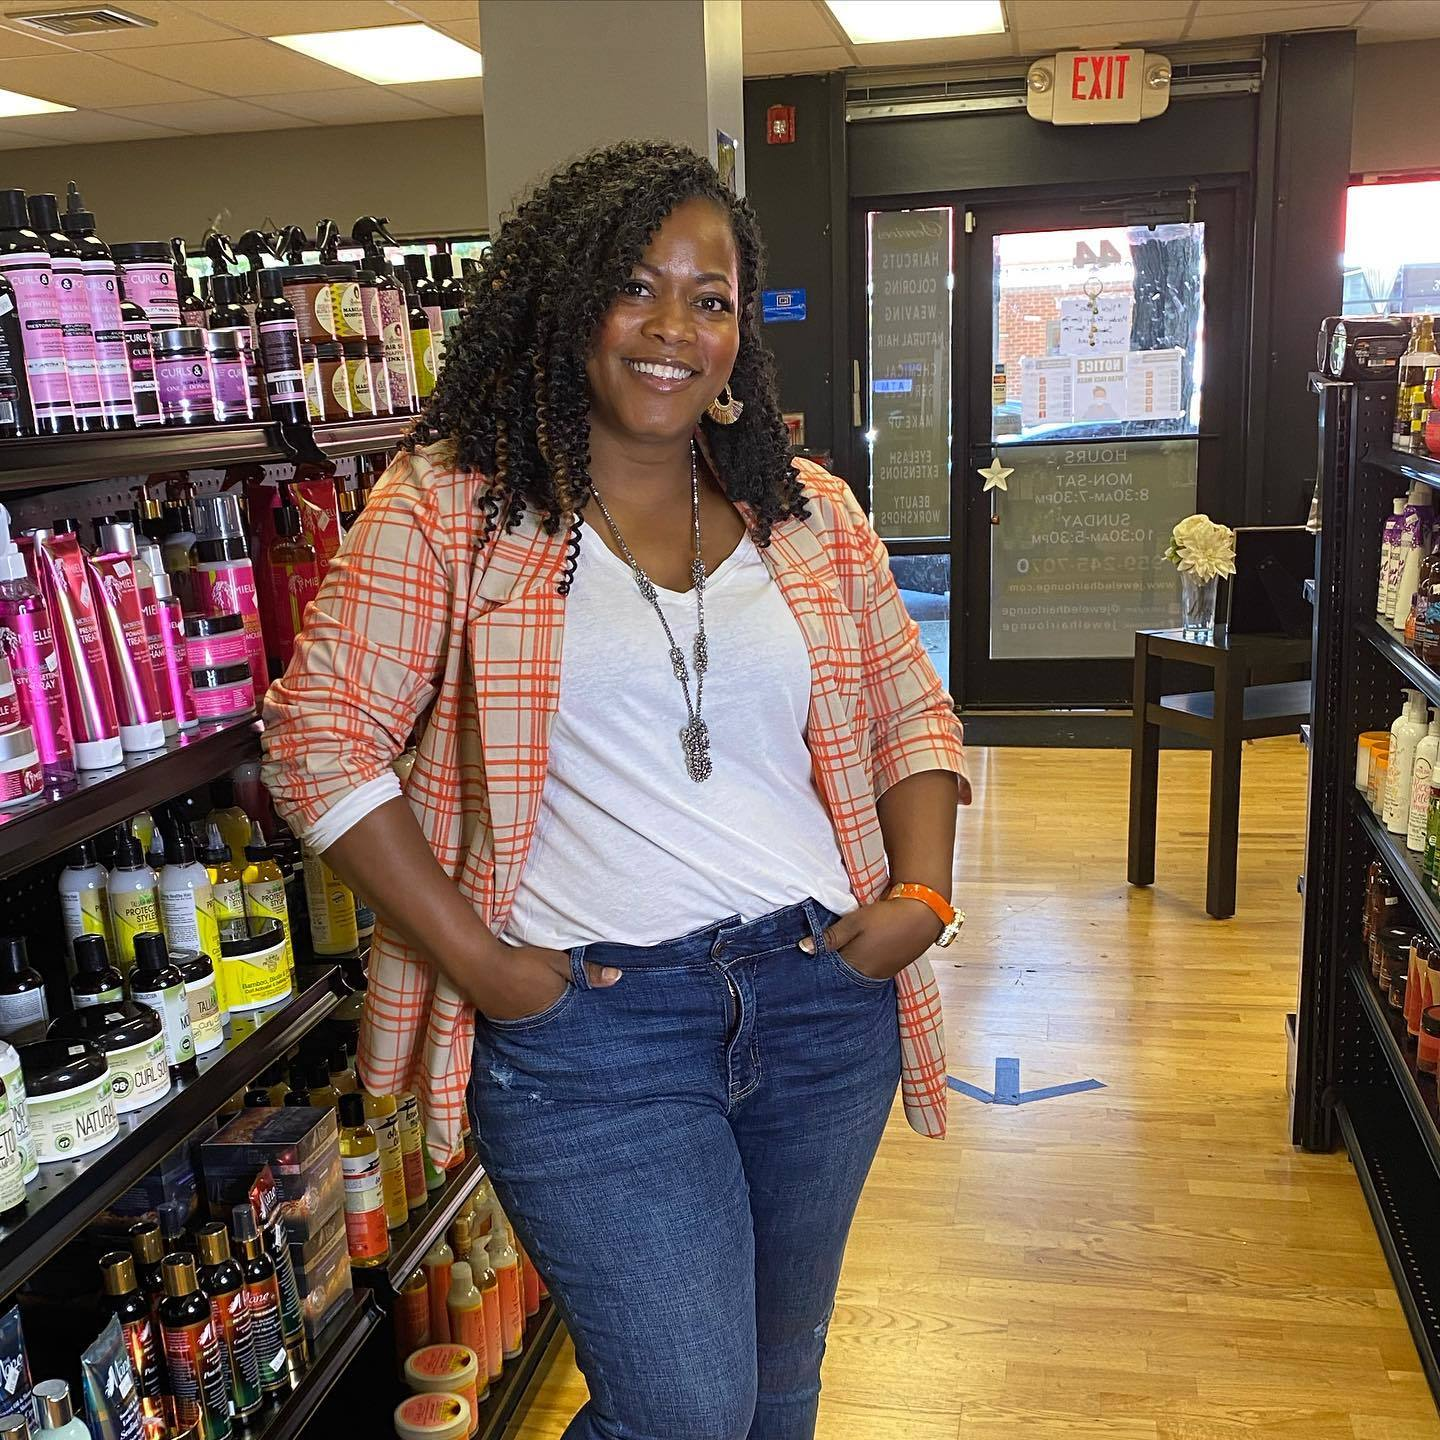 Adrian Goodwin, Co-Owner of Jeweled Hair Lounge and Beauty Supply